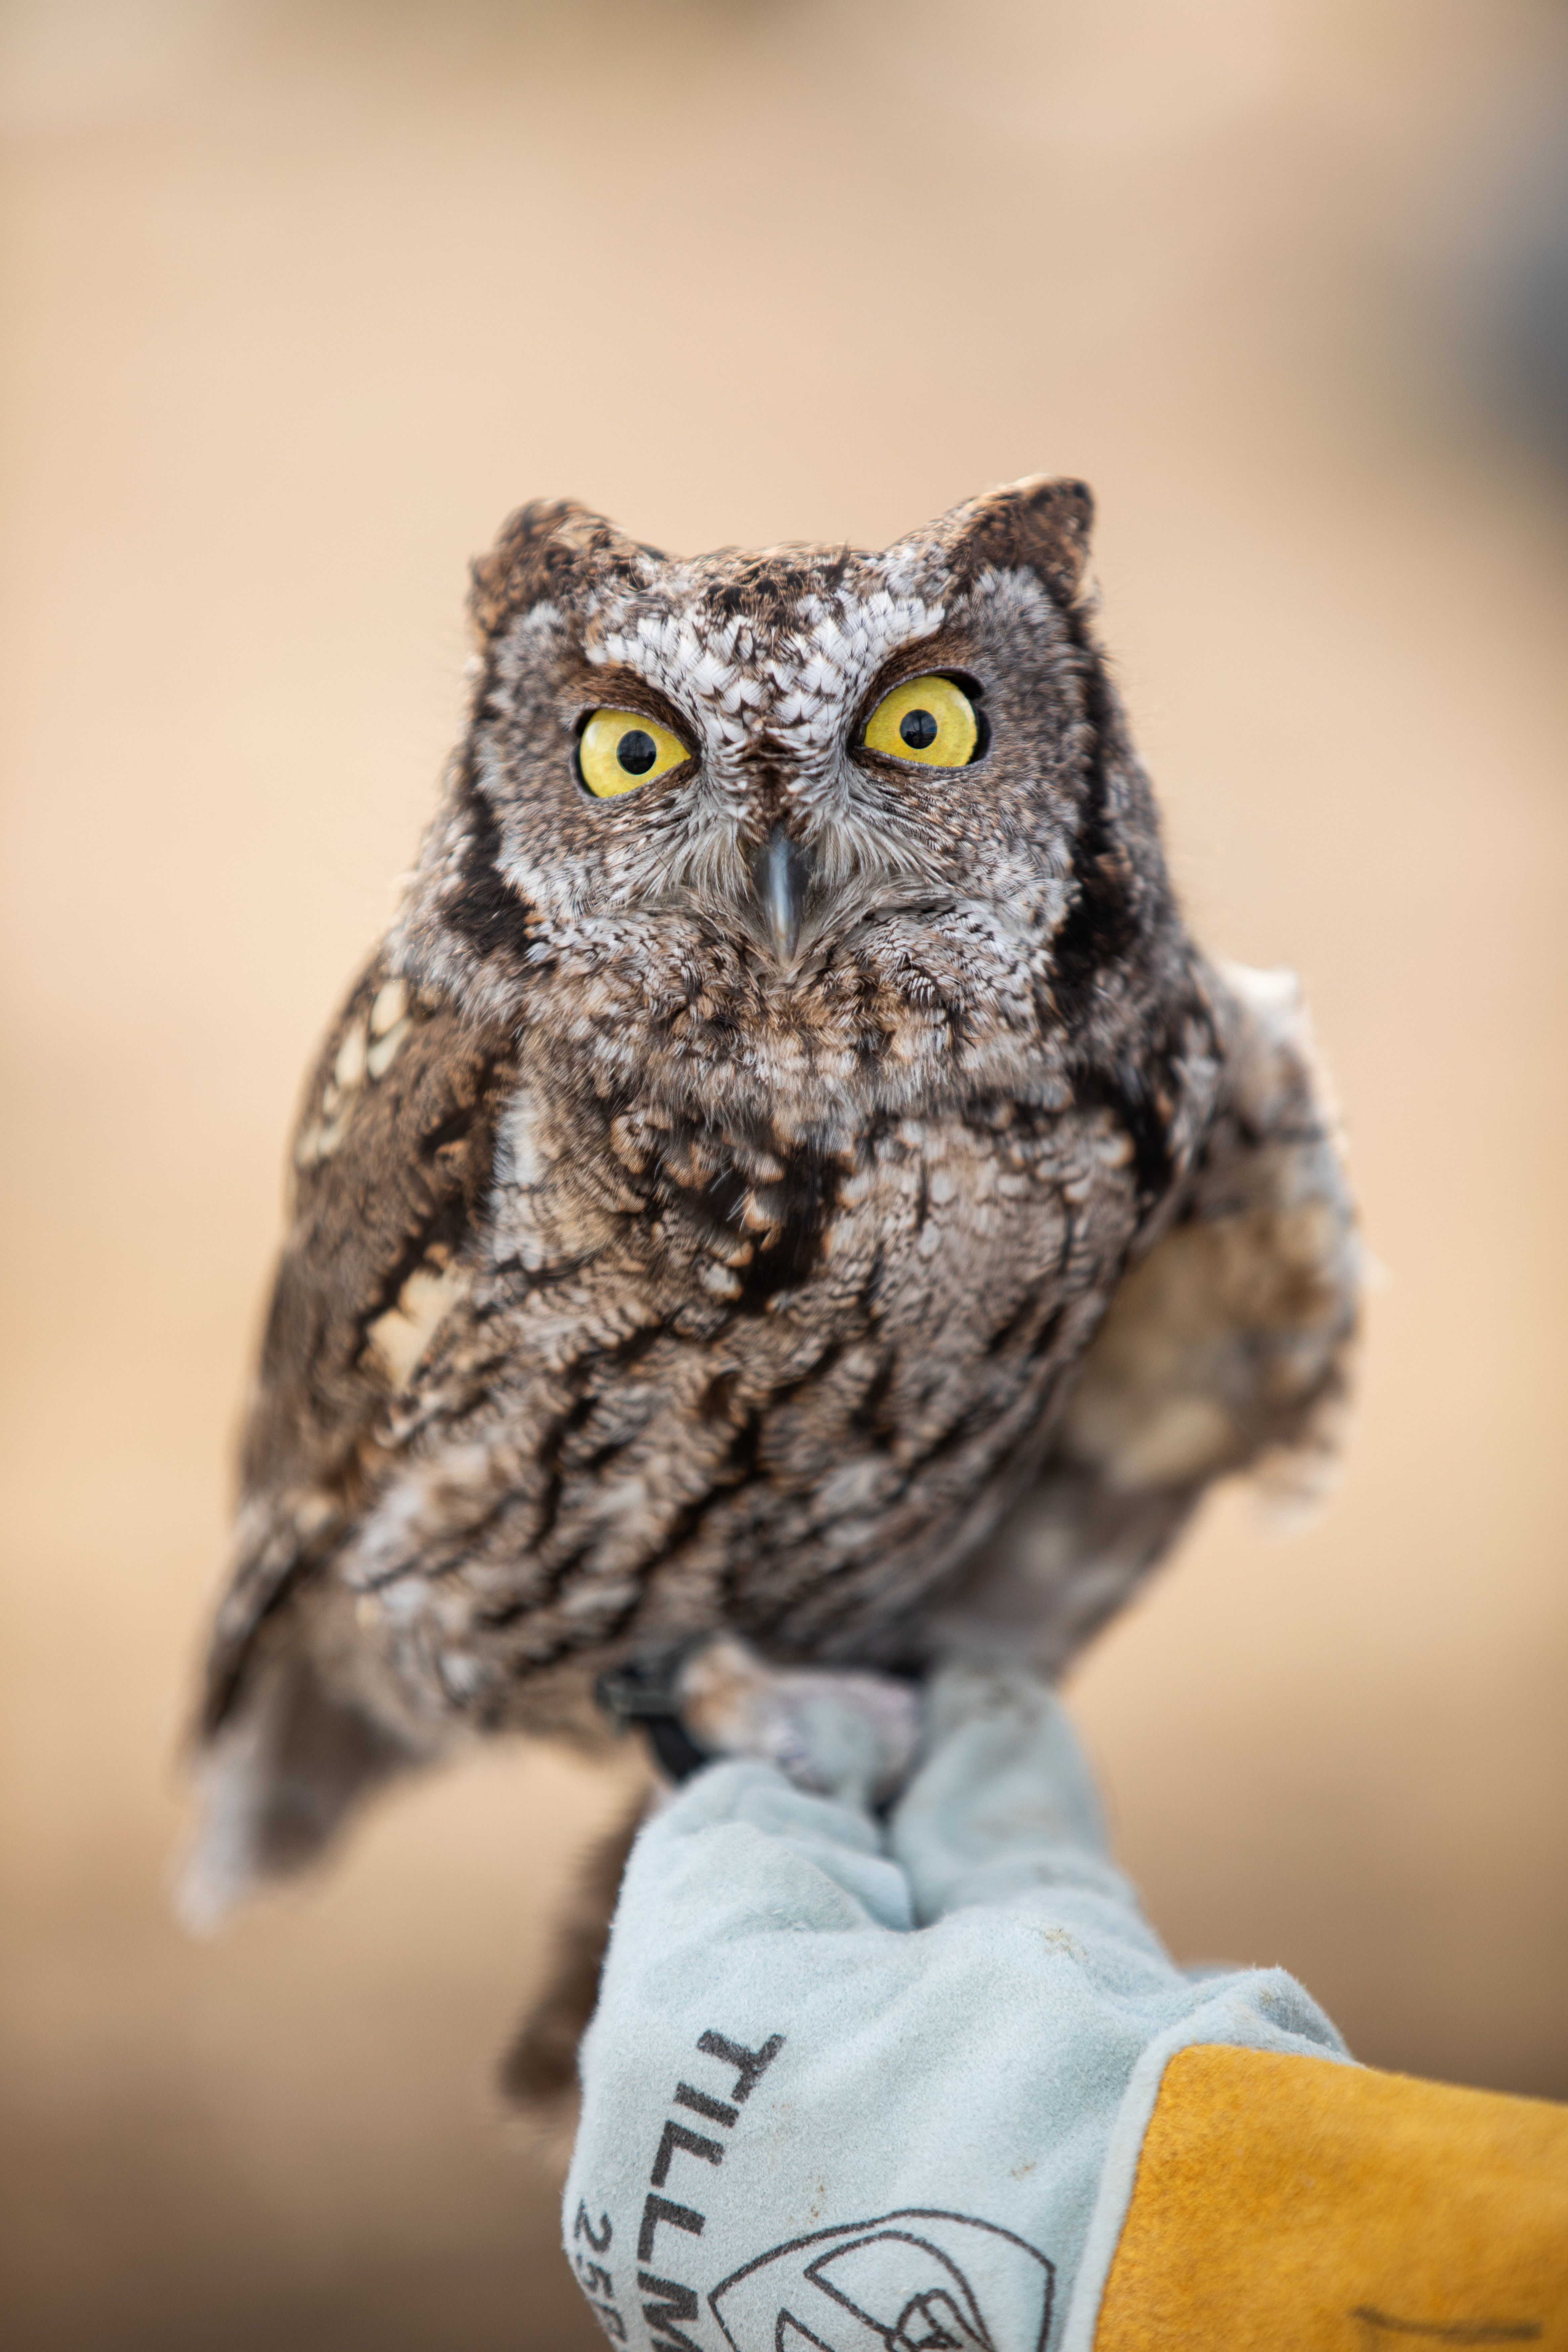 Owls of Montana: Join Montana Fish, Wildlife & Parks for a presentation that is all about owls. We will learn about this amazing group of raptors and even meet some live birds!